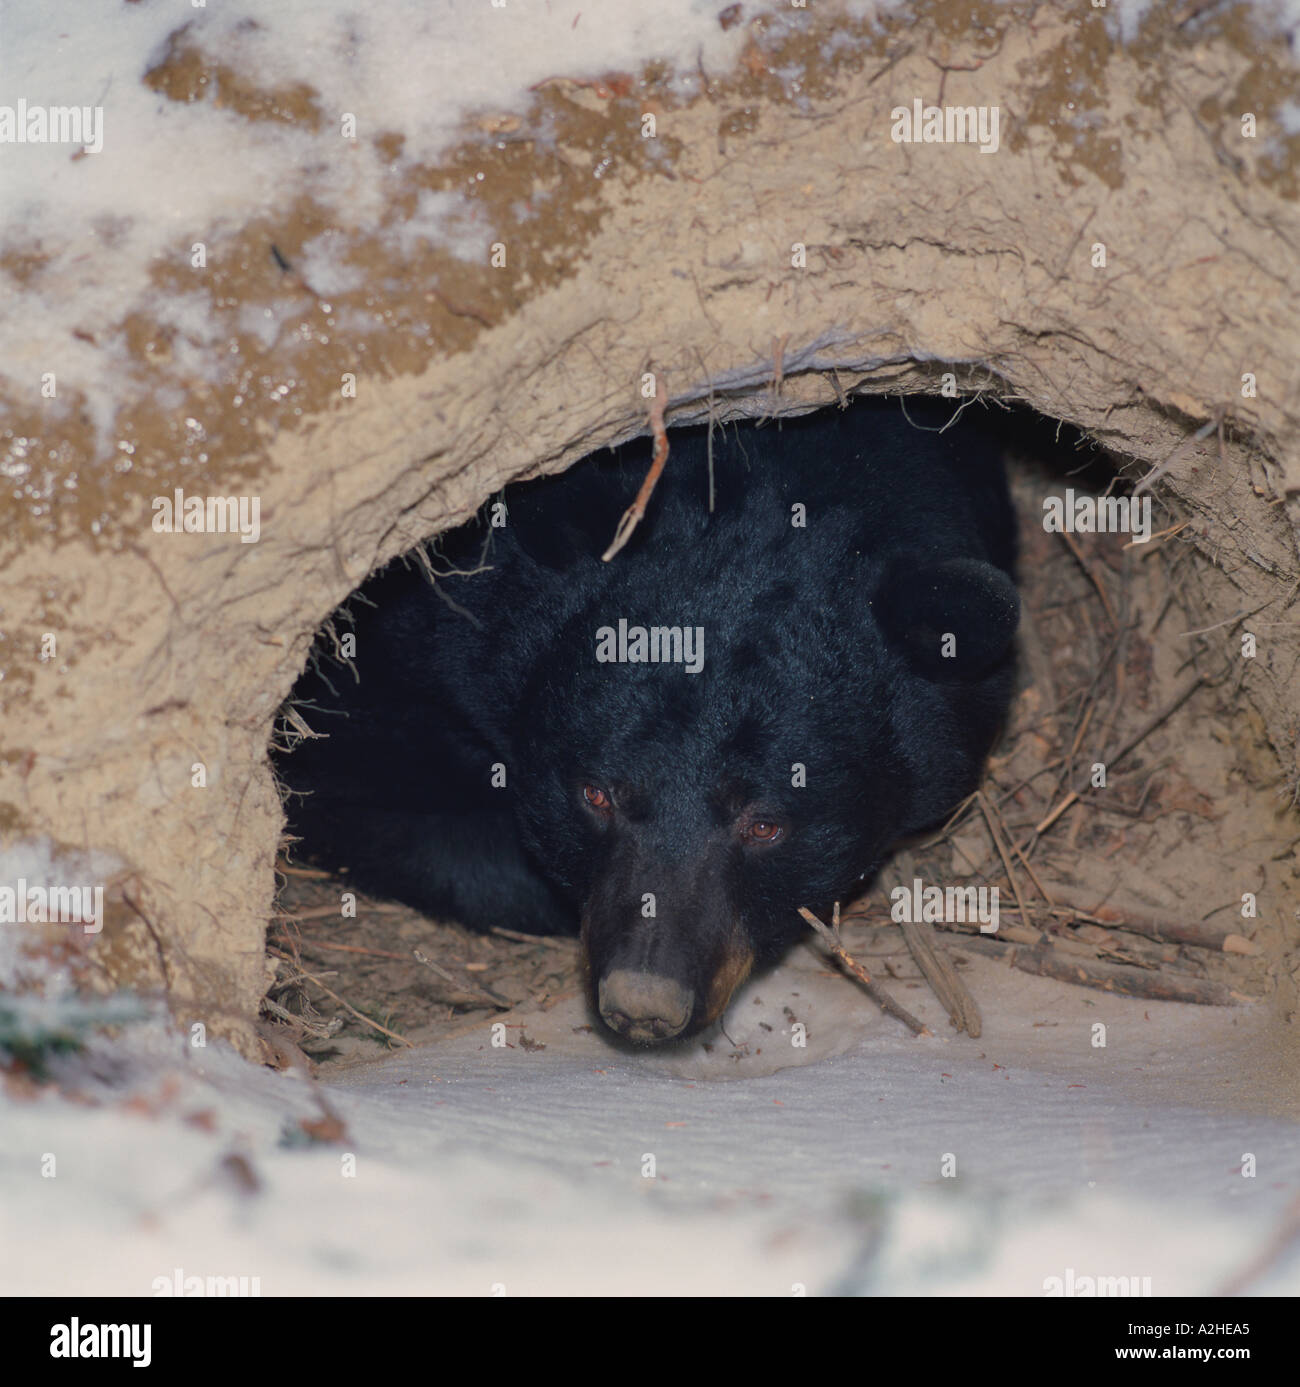 A Black Bear Ursus americanus looks out from its winter den dug into the earthside - Stock Image